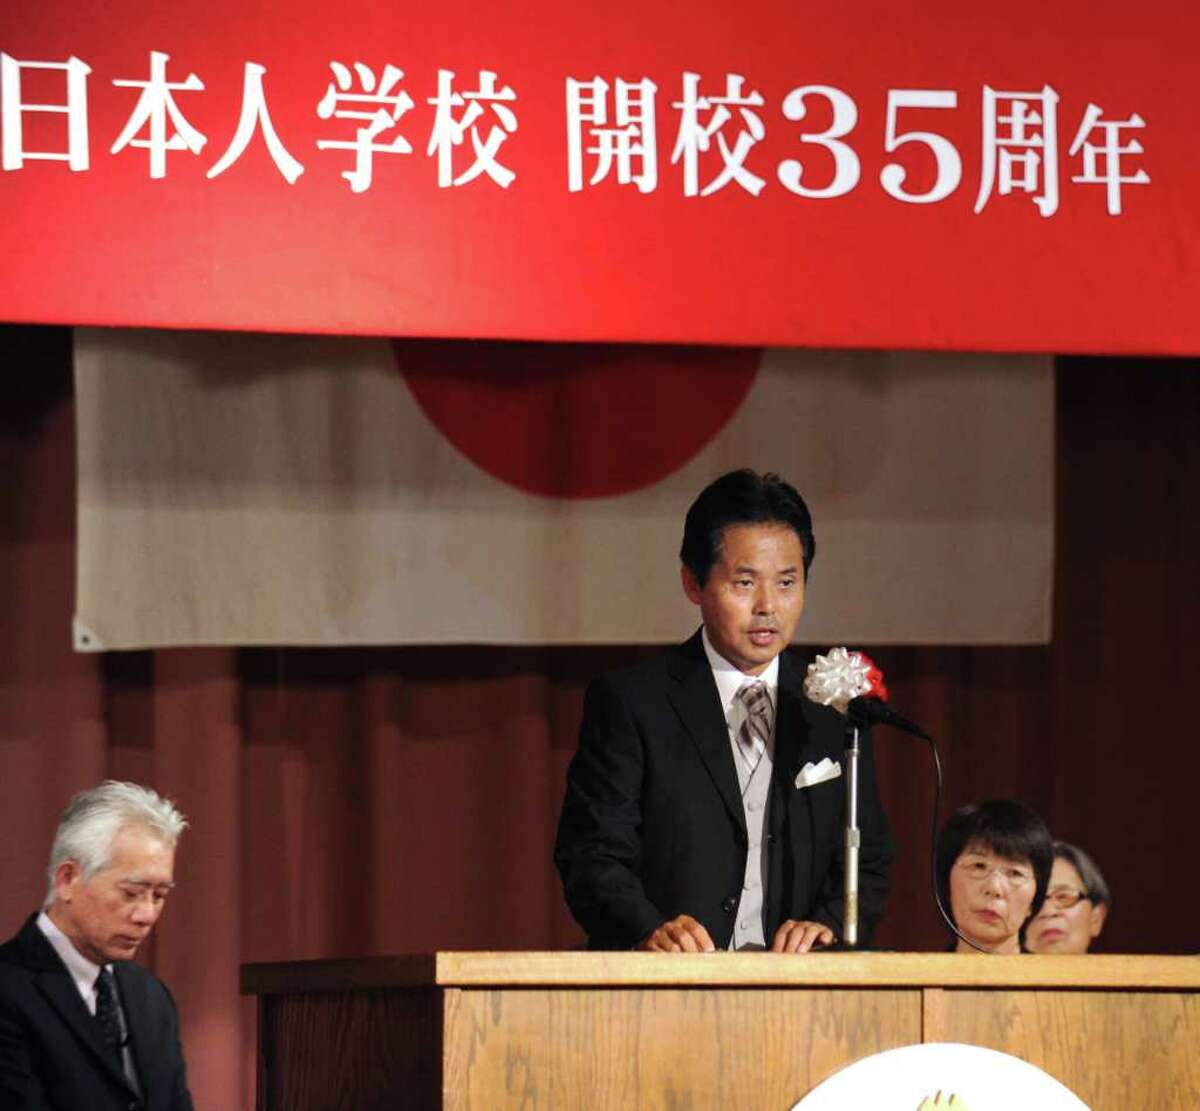 Tomoyuki Mitsui, center, principal of the Japanese School of New York located on Lake Avenue, Greenwich, addresses the audience during the celebration of the 35th anniversary of the school's founding, at the school, Thursday. Sept. 2, 2010.